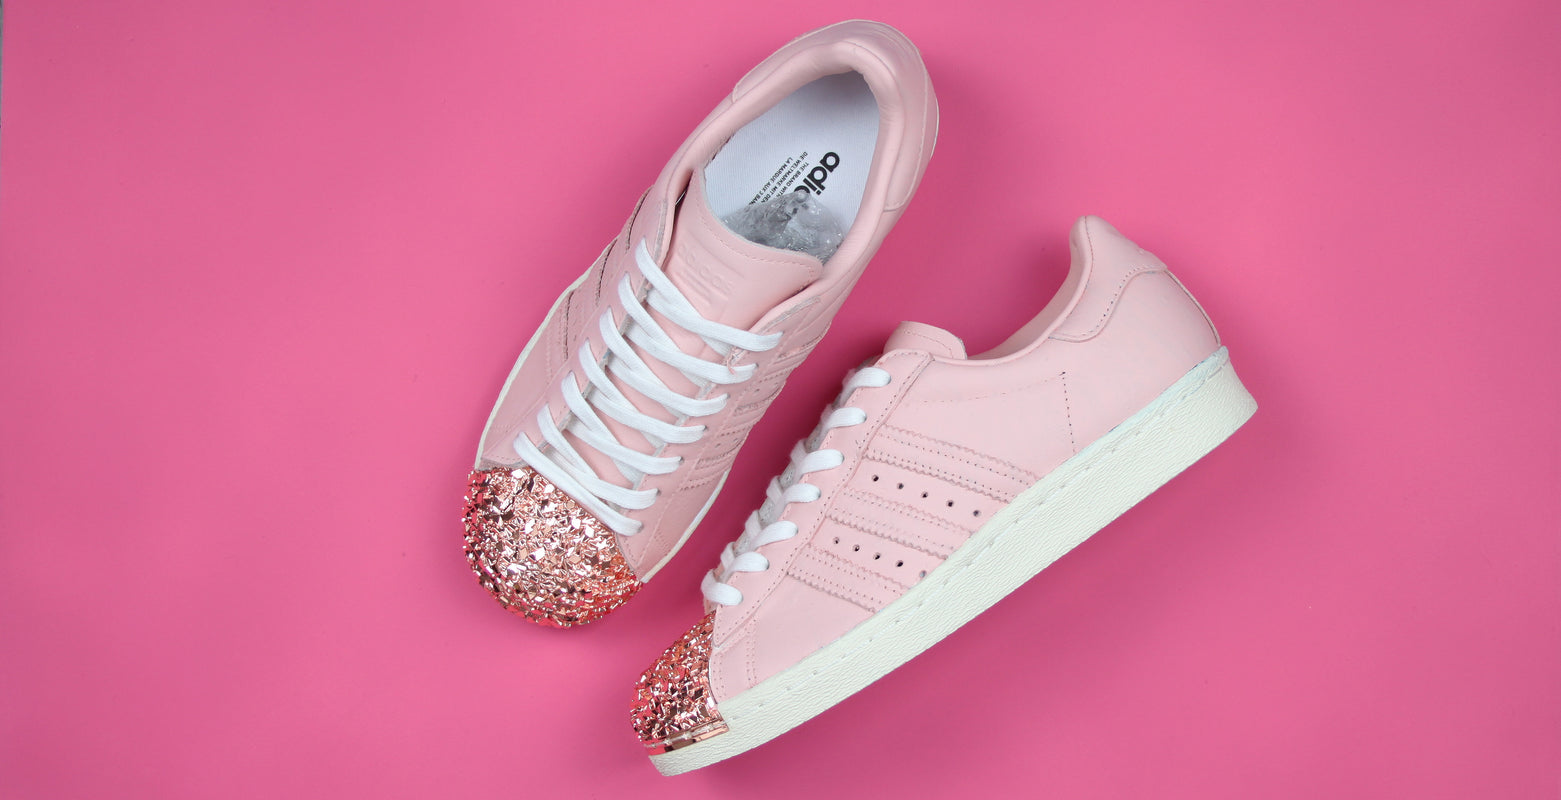 TheShoeCosmetics Hand Painted Pink Adidas Superstar Custom Sneakers